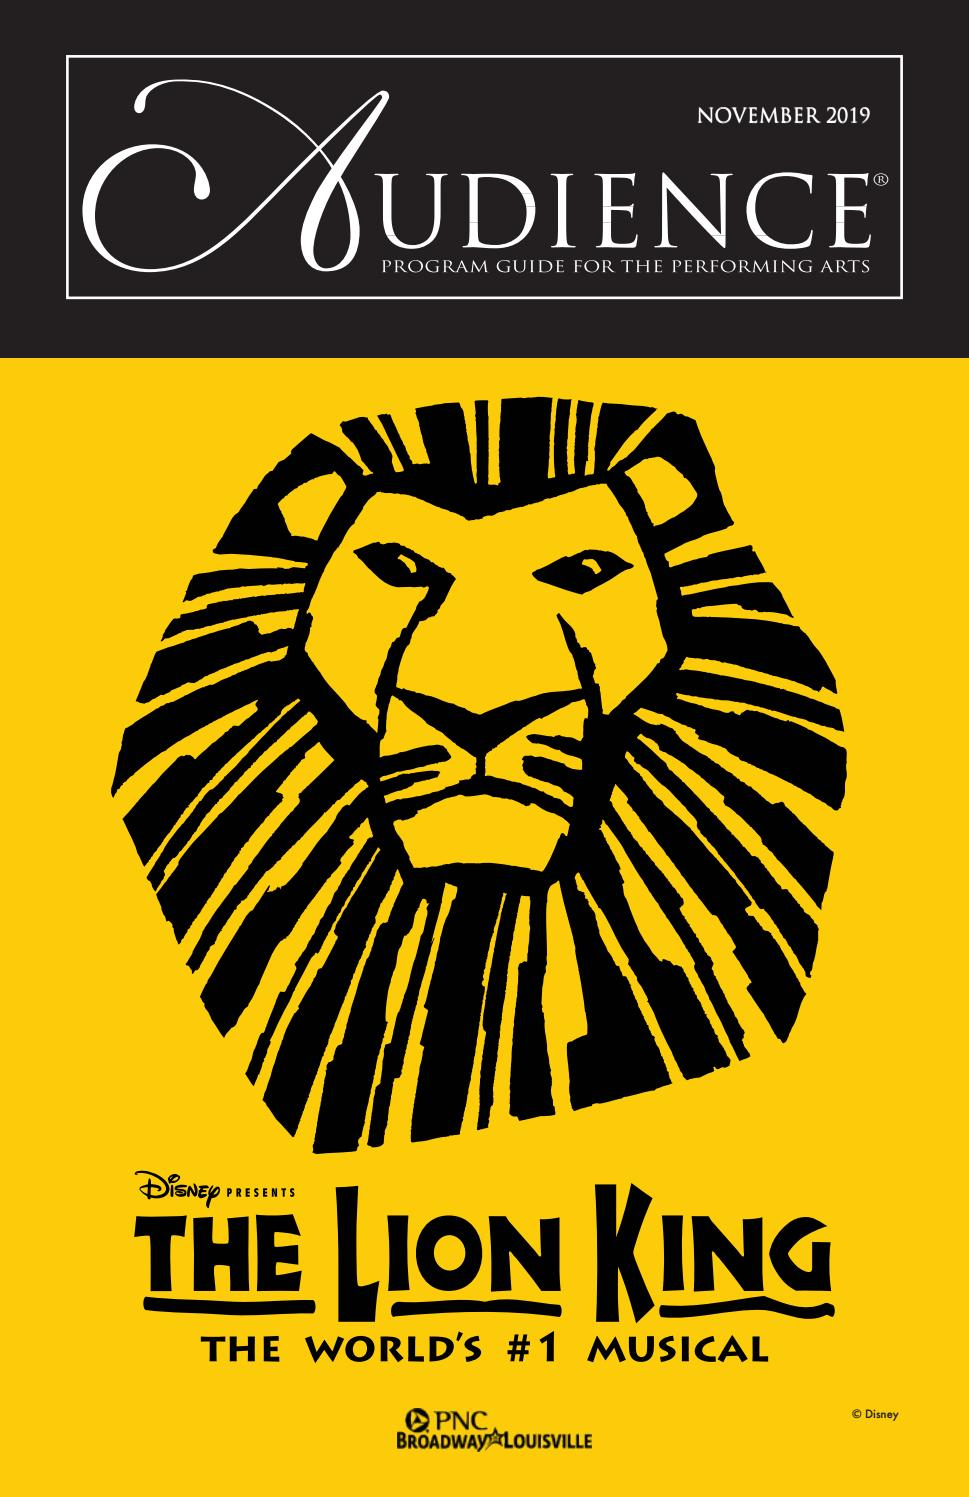 Pnc Broadway Series November 2019 The Lion King By Audience502 Issuu